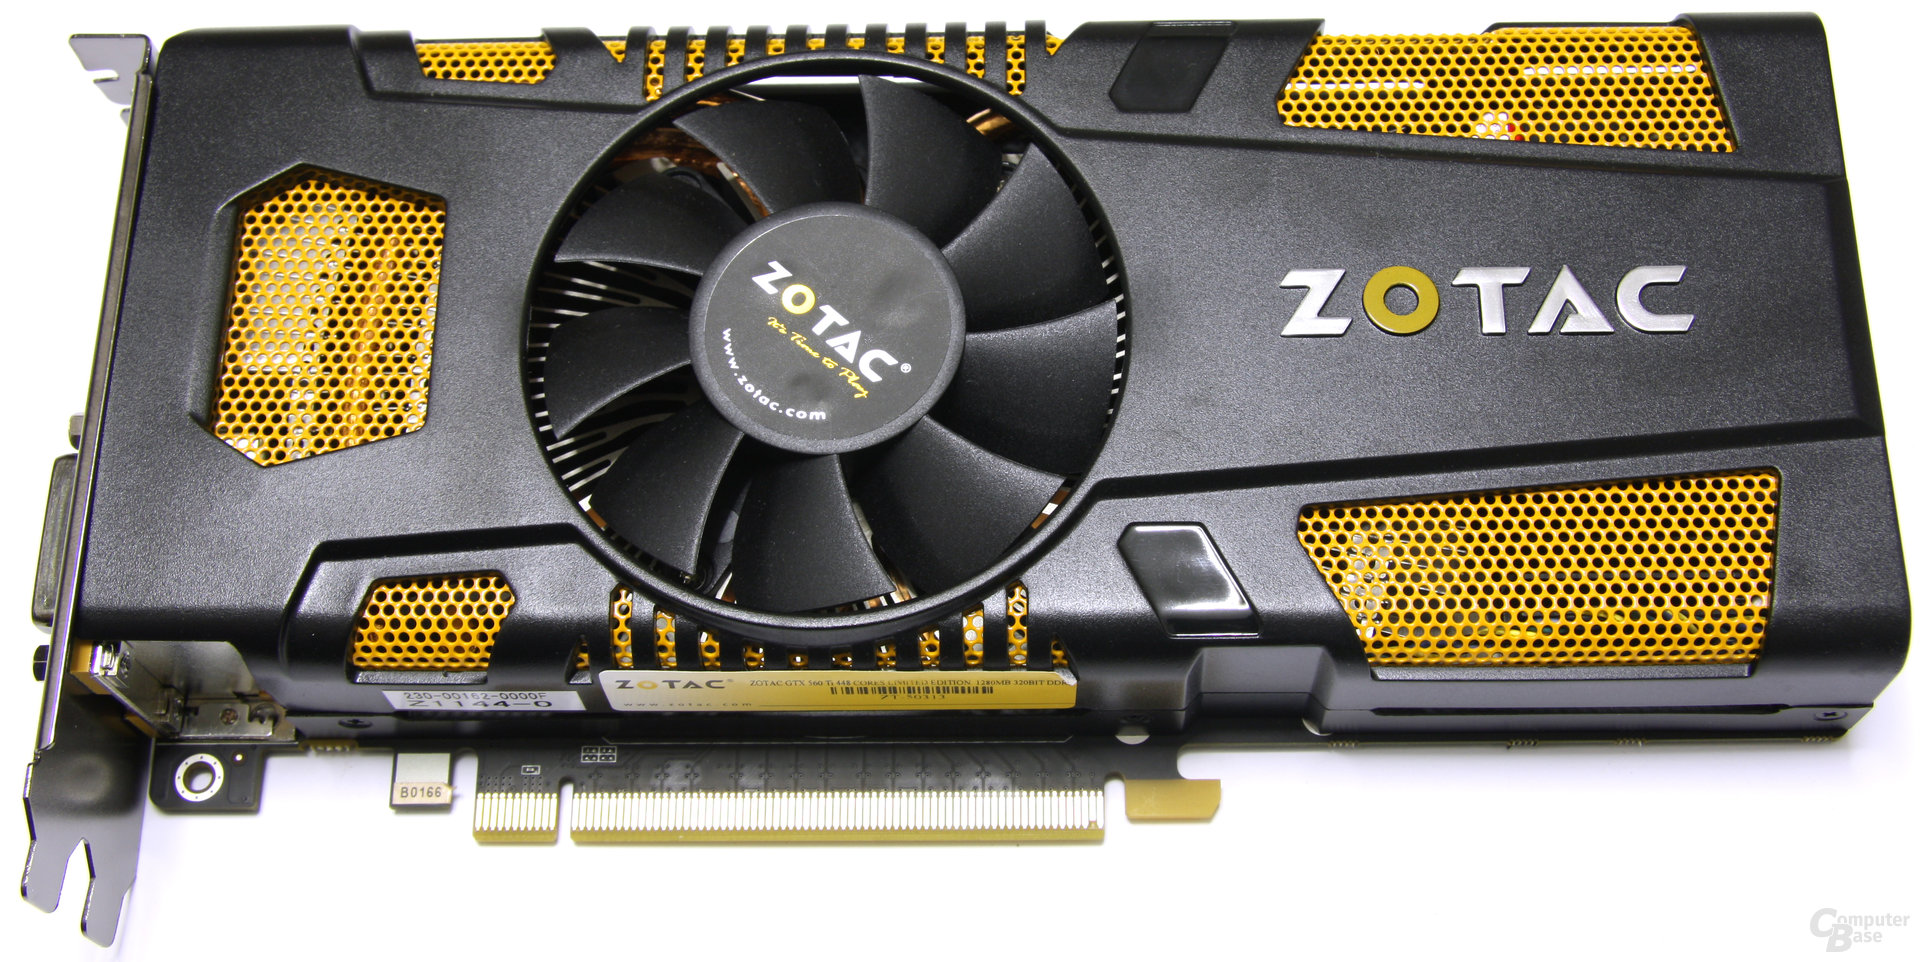 Zotac GeForce GTX 560 Ti 448 Core LE